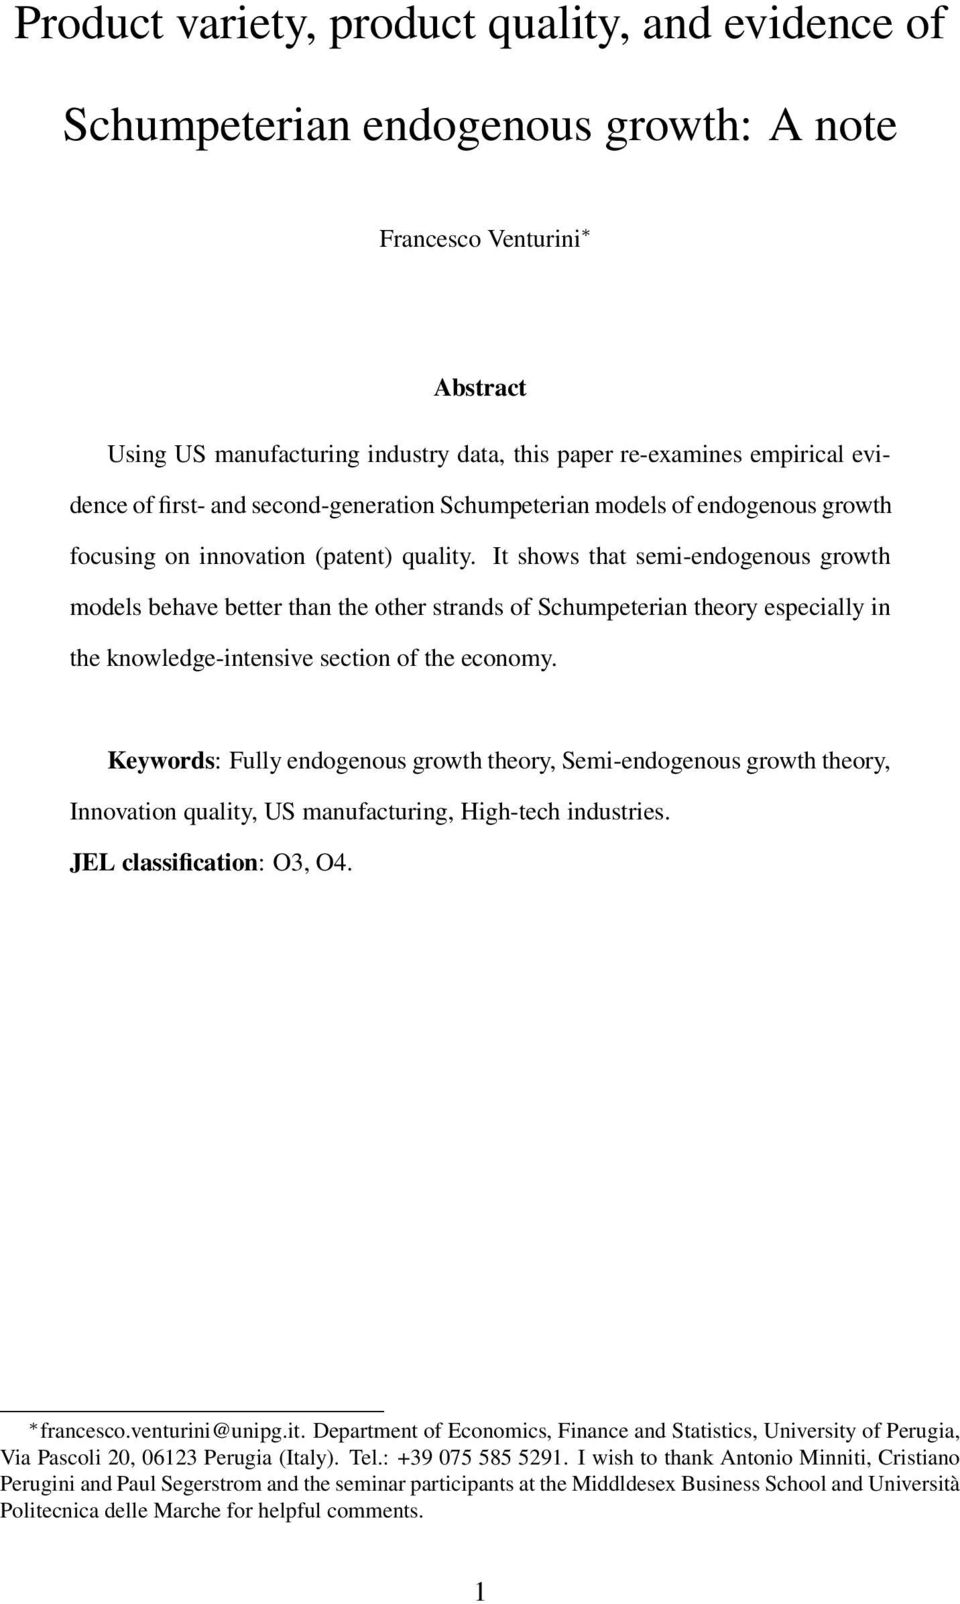 It shows that semi-endogenous growth models behave better than the other strands of Schumpeterian theory especially in the knowledge-intensive section of the economy.